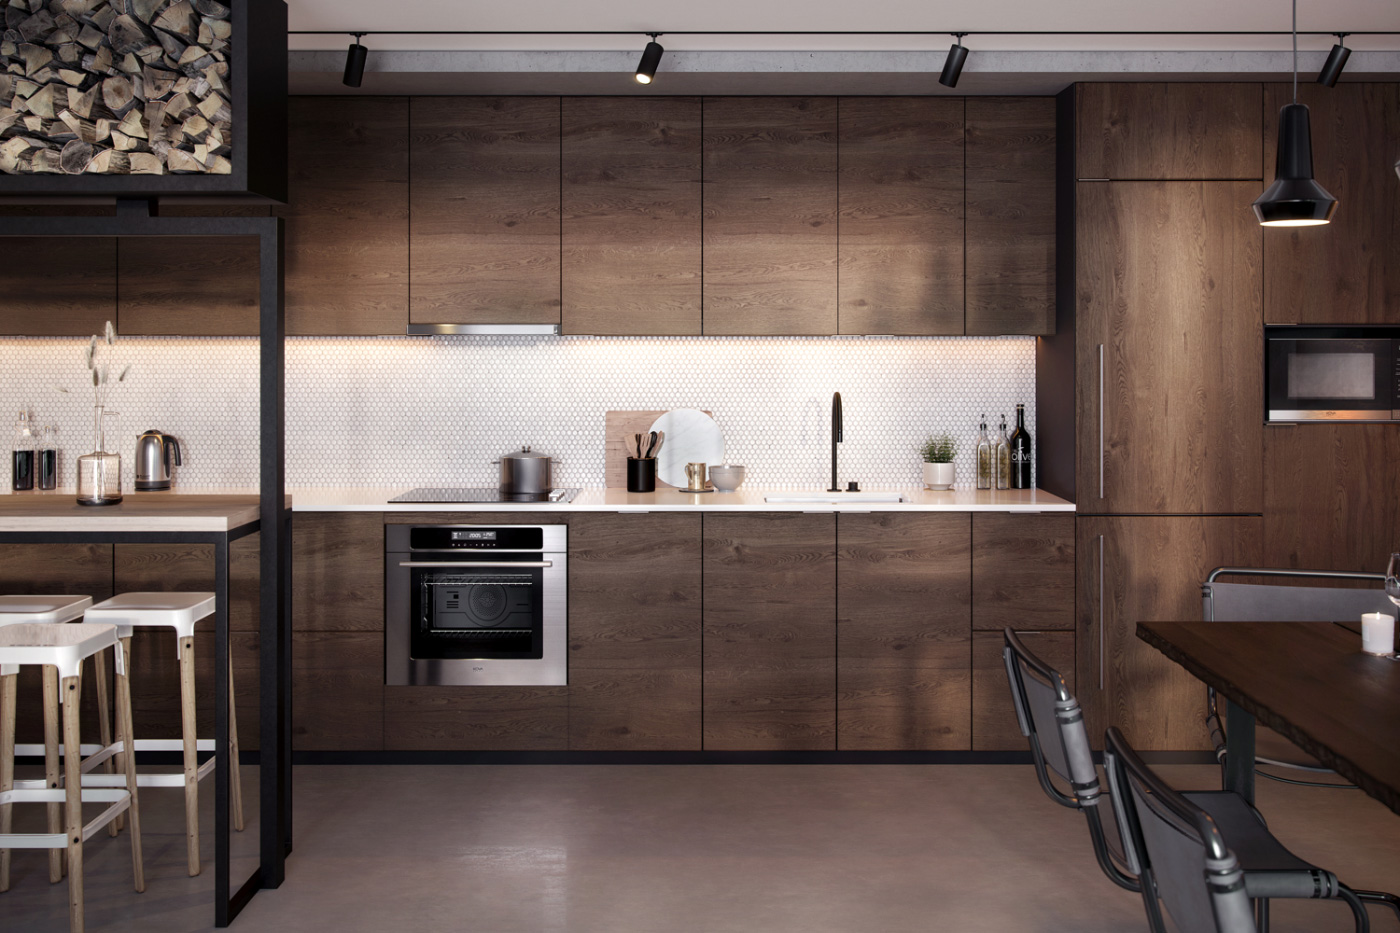 Photo of a kitchen system with wood cabinets from KOVA